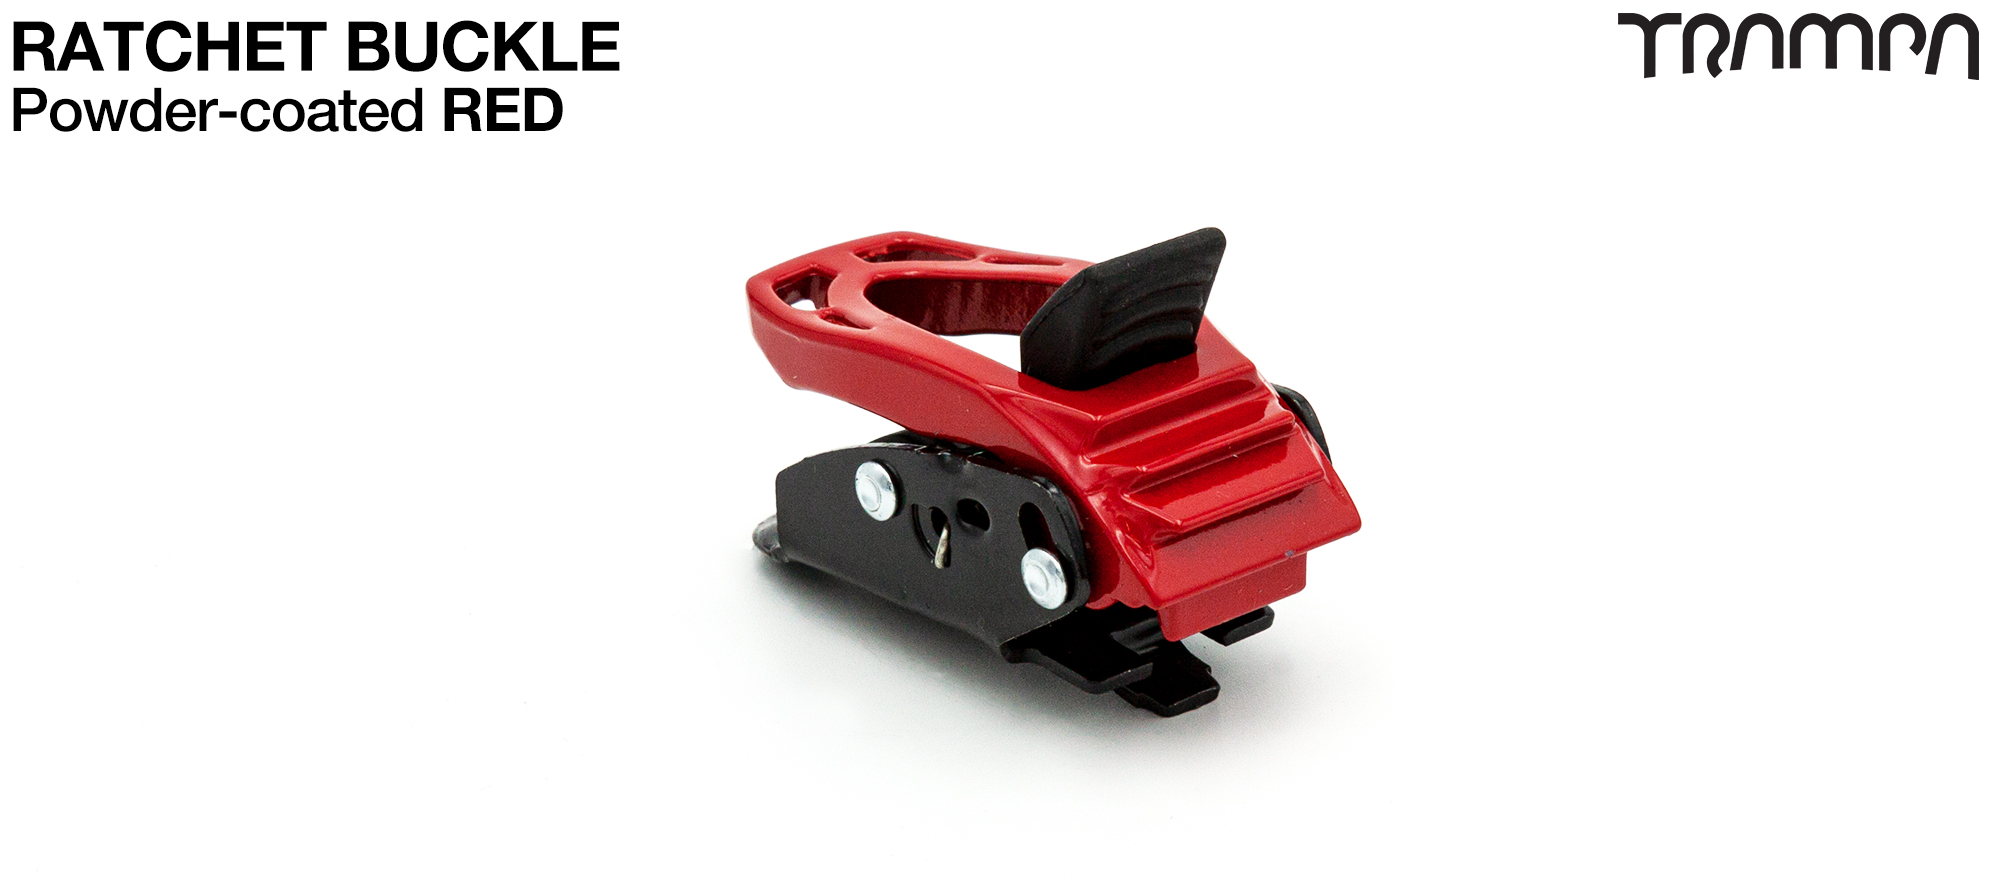 RED Powder Coated Ratchet Buckle (+£15)